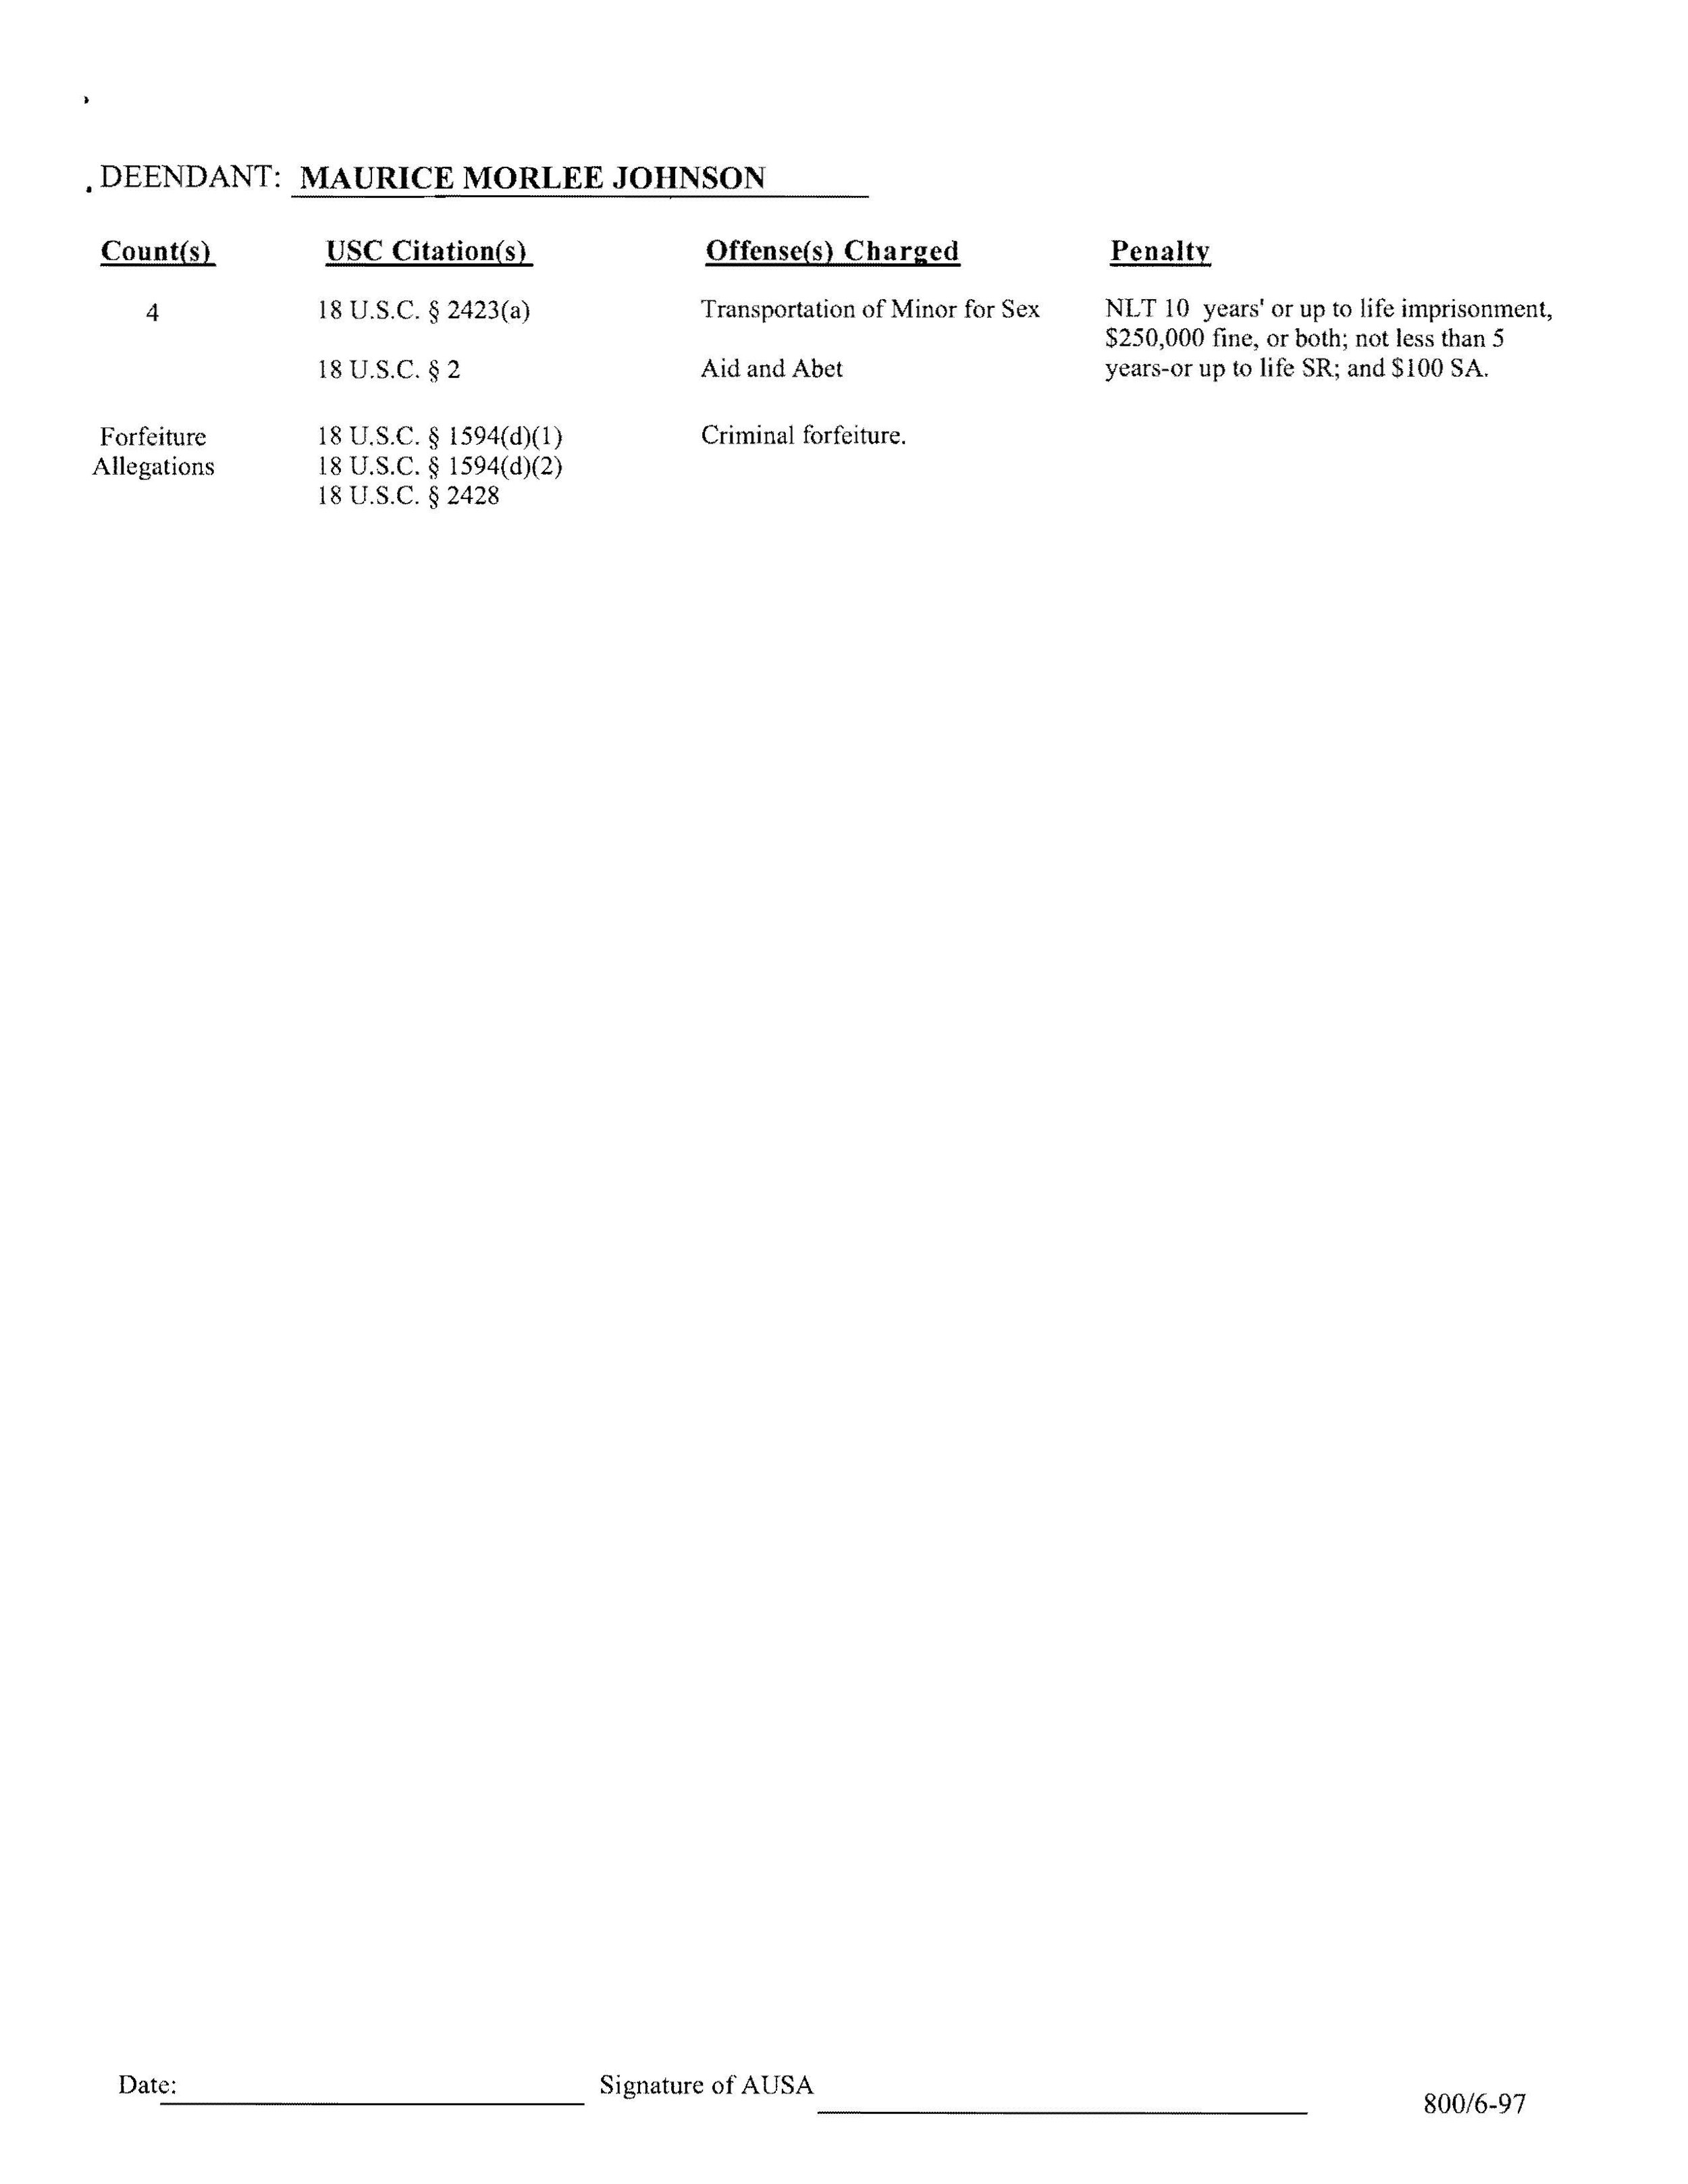 Maurice Johnson Indictment_Page_09_Image_0001.jpg